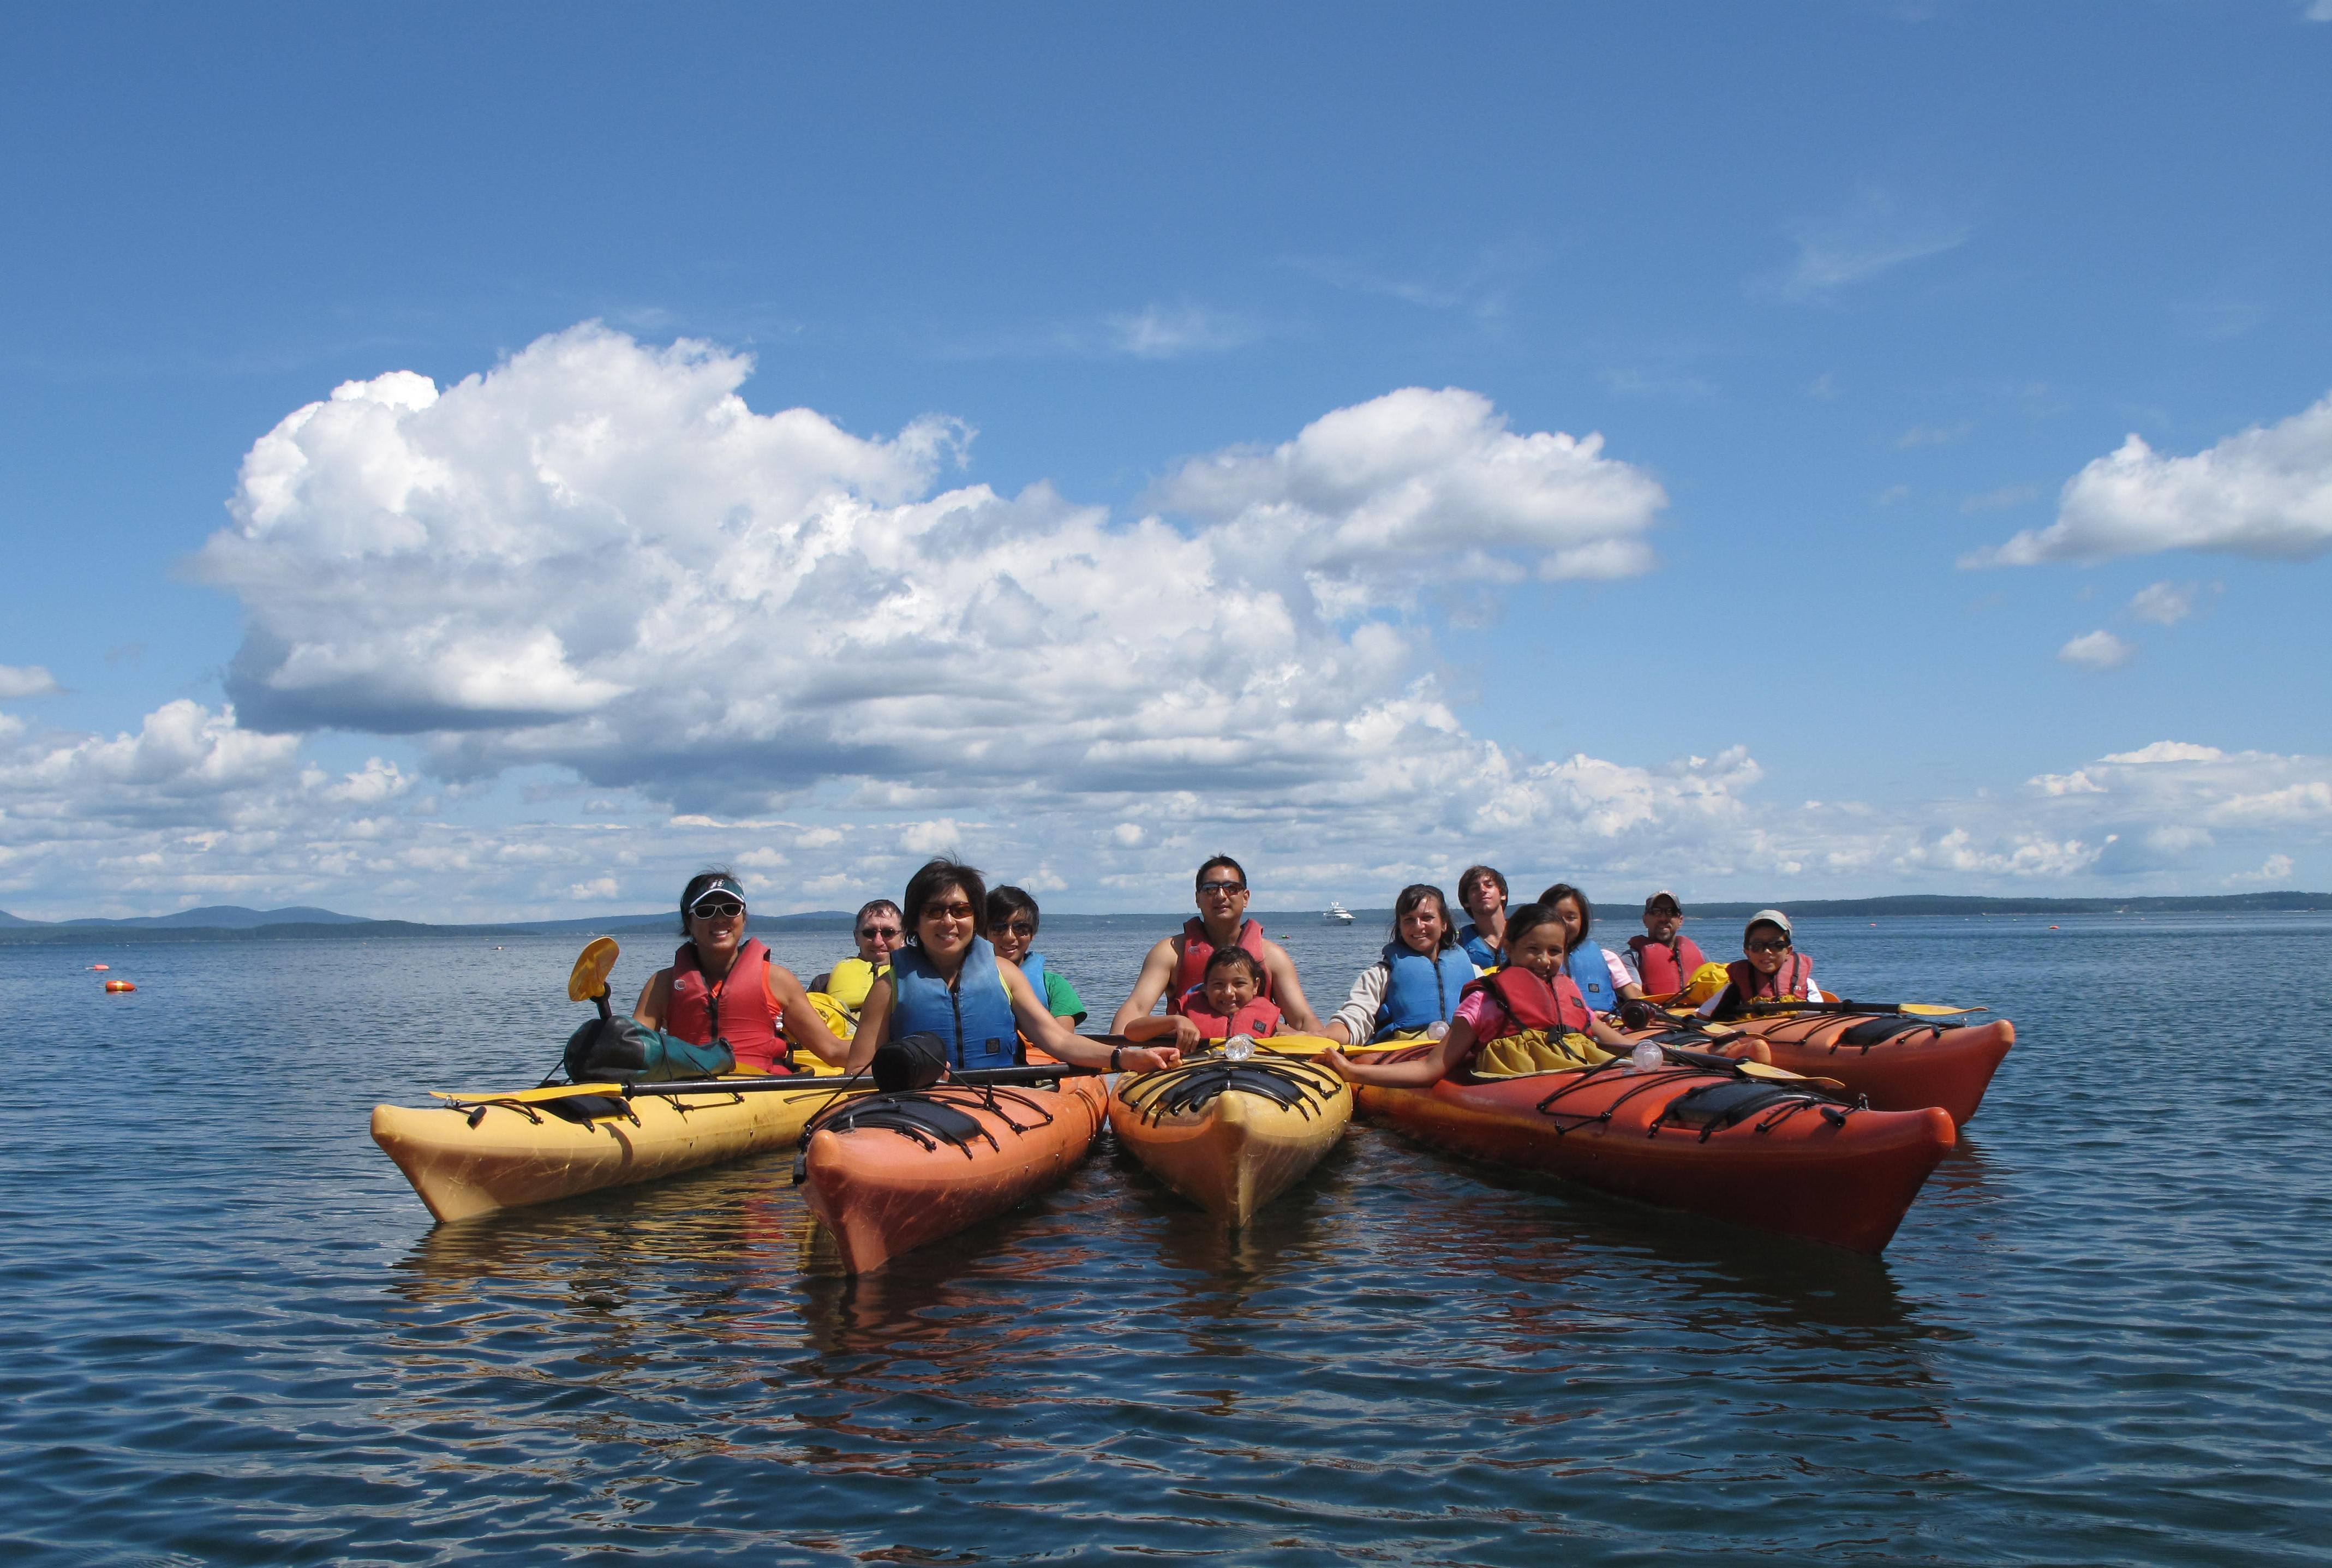 https://s3.amazonaws.com/NMC-Clients/Bar+Harbor/A-Z/Group+Kayak+credit+Coastal+Kayaking+Tours.JPG?utm_source=BH+-+Find+Your+Park+A-Z&utm_campaign=BH+Events&utm_medium=email